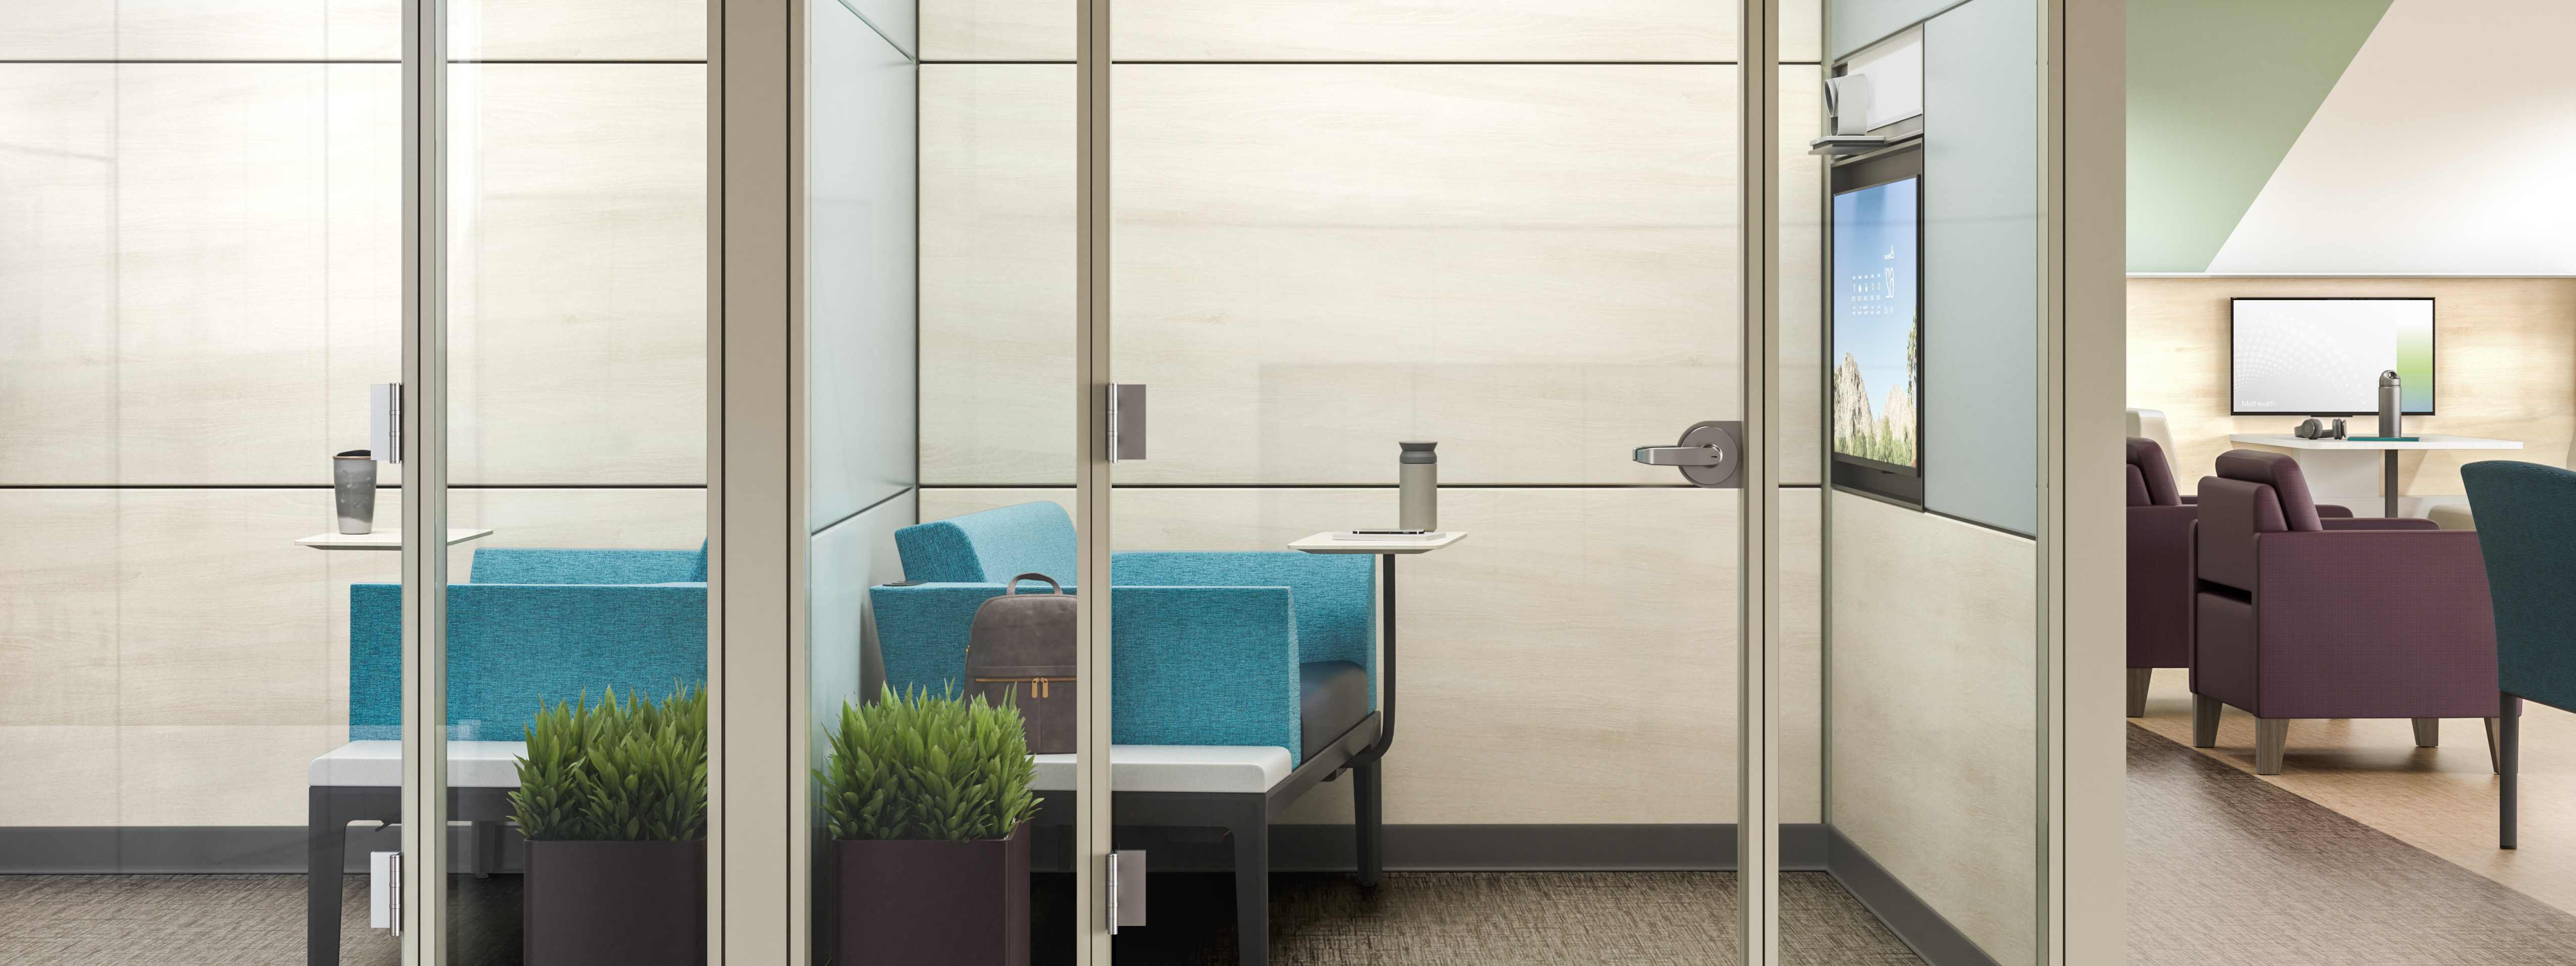 photo of healthcare private waiting rooms steelcase